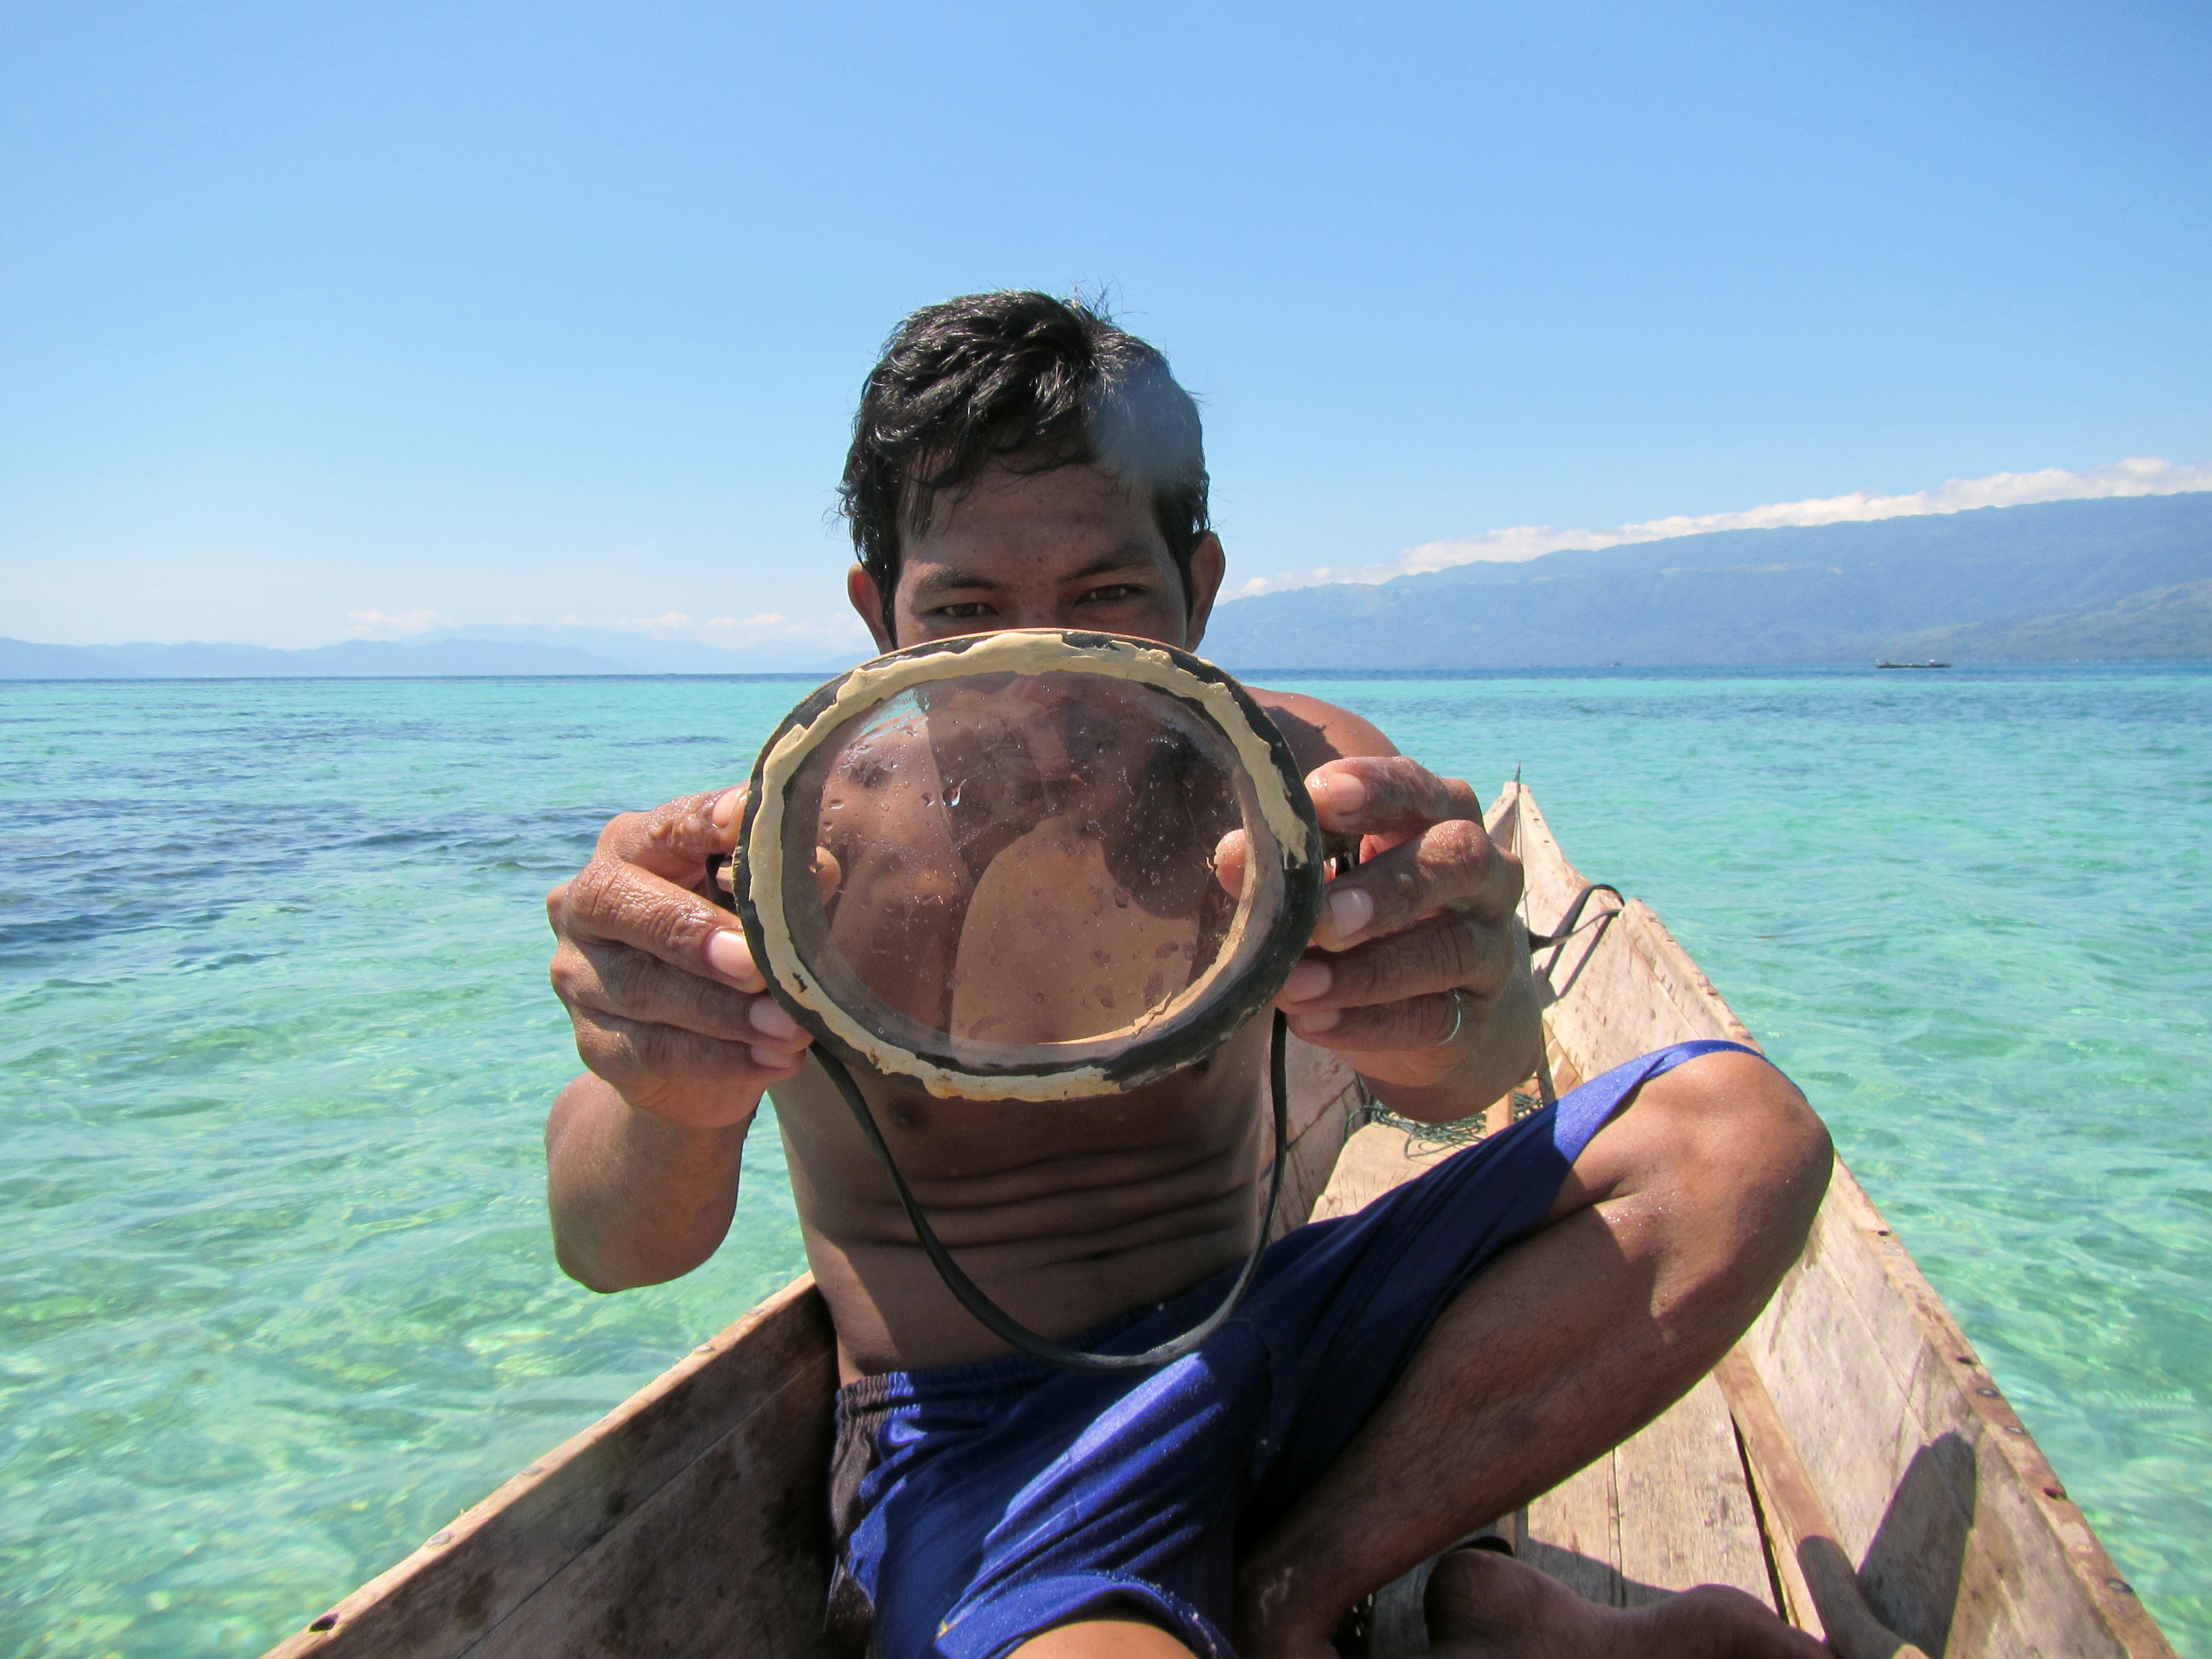 A Bajau diver displays a traditional wooden diving mask.